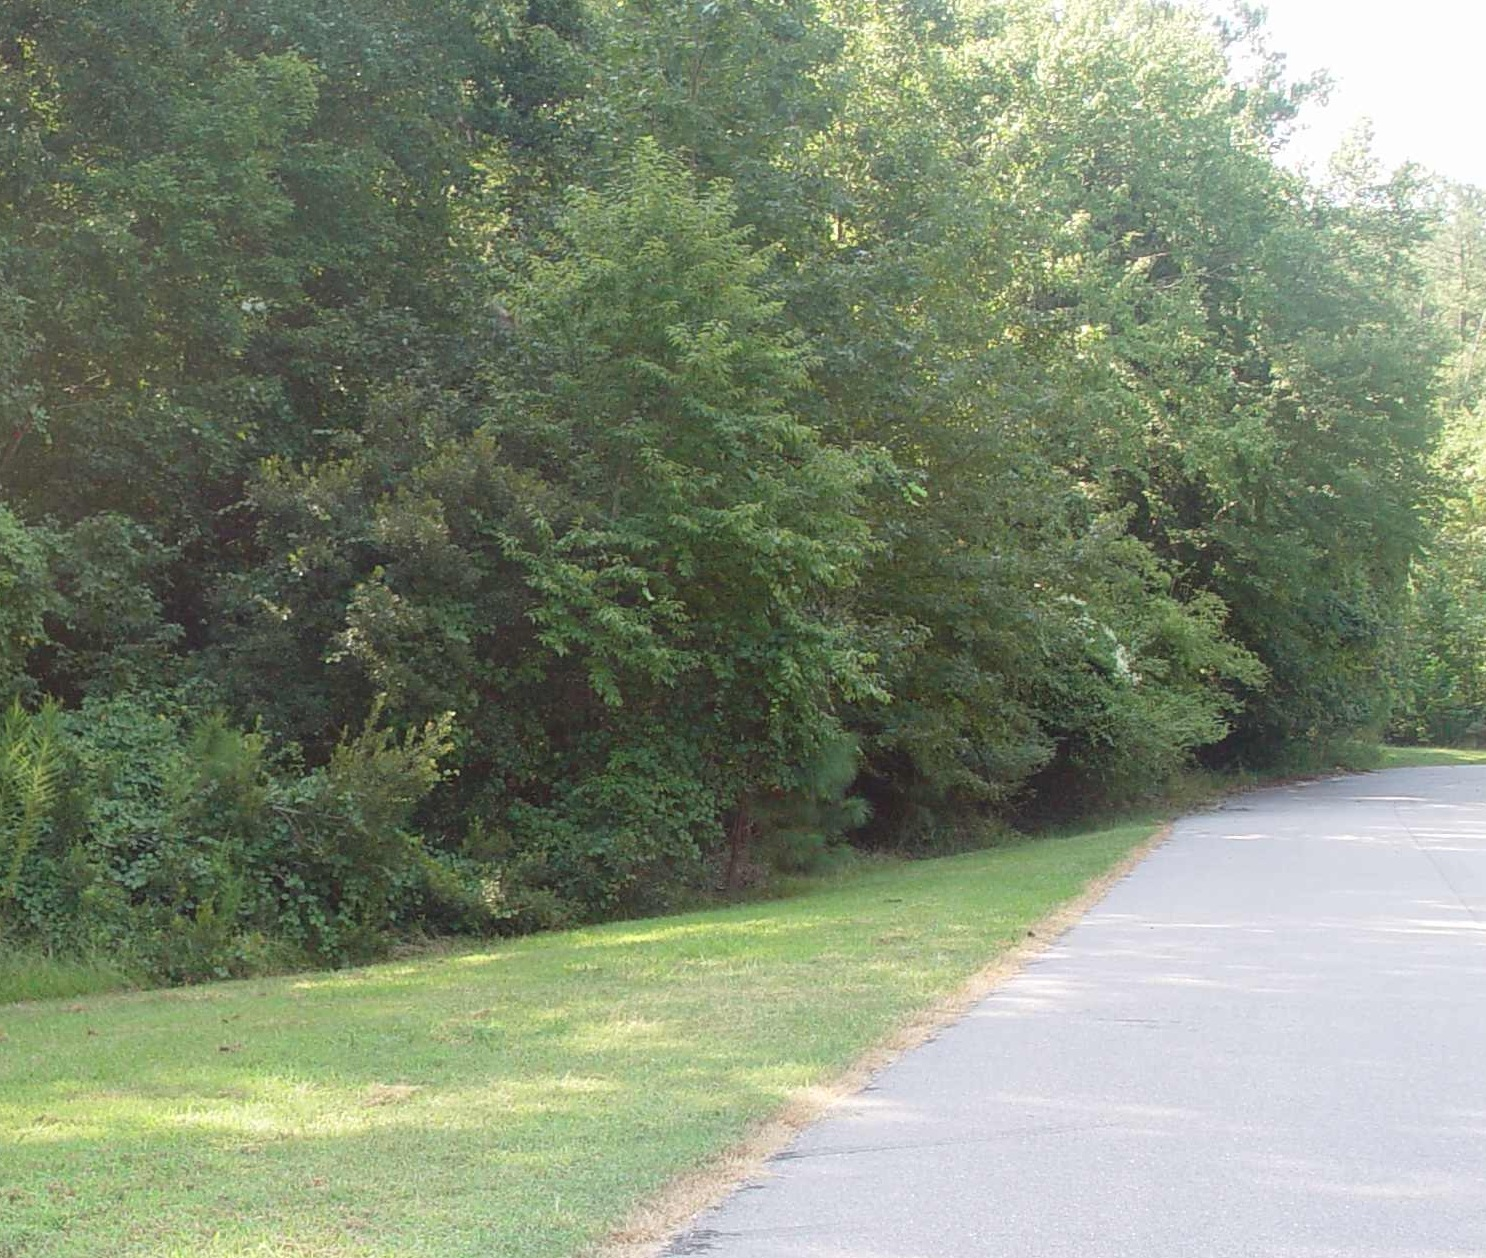 Wooded area near my house